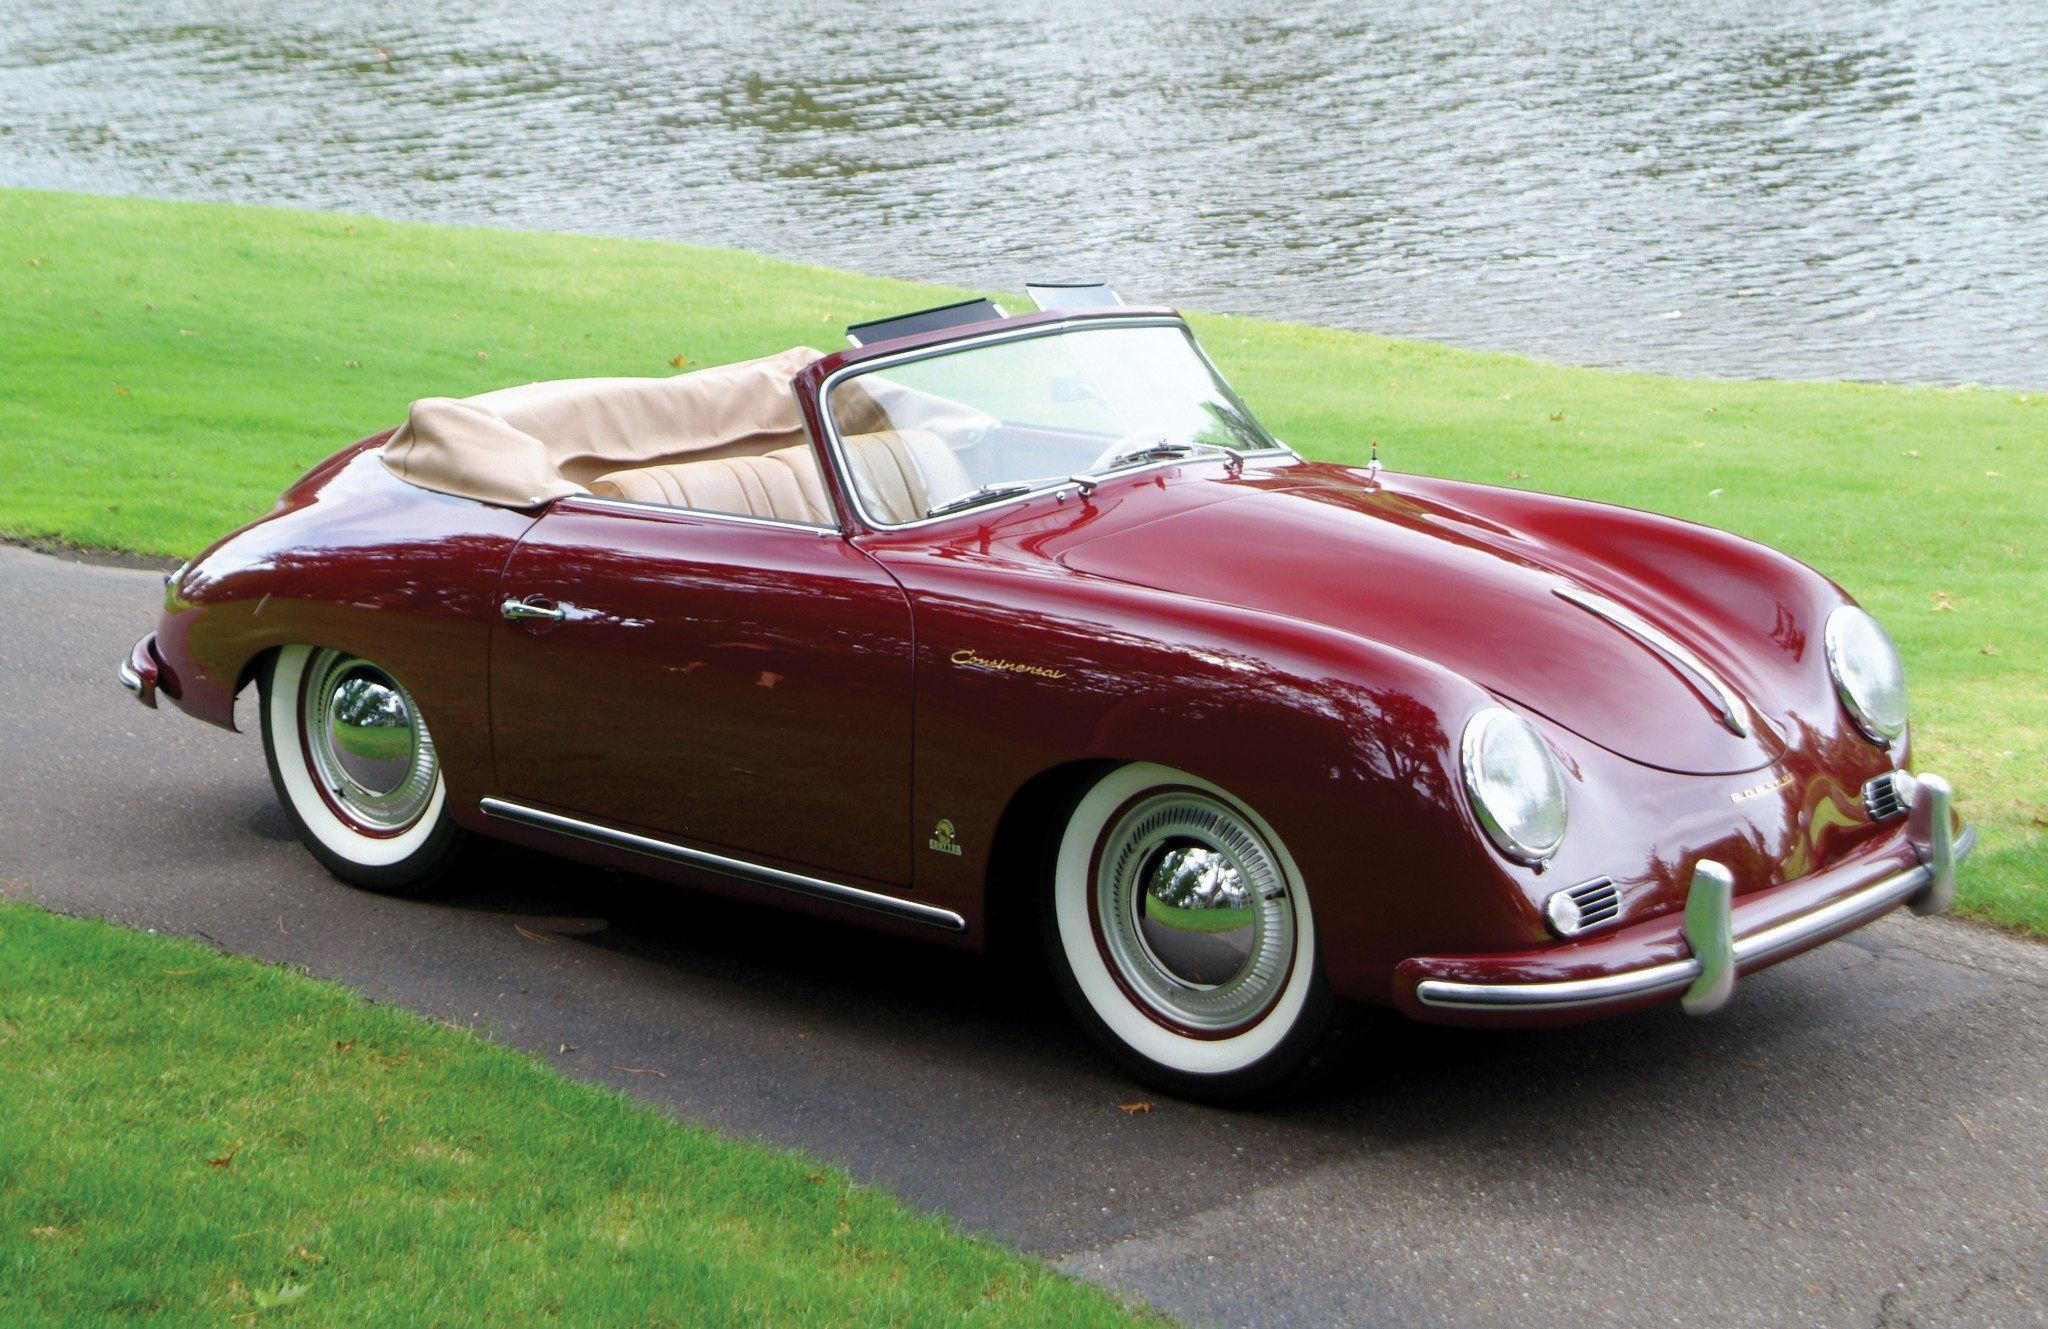 1955 Porsche 356 Continental The Grand Dame Of